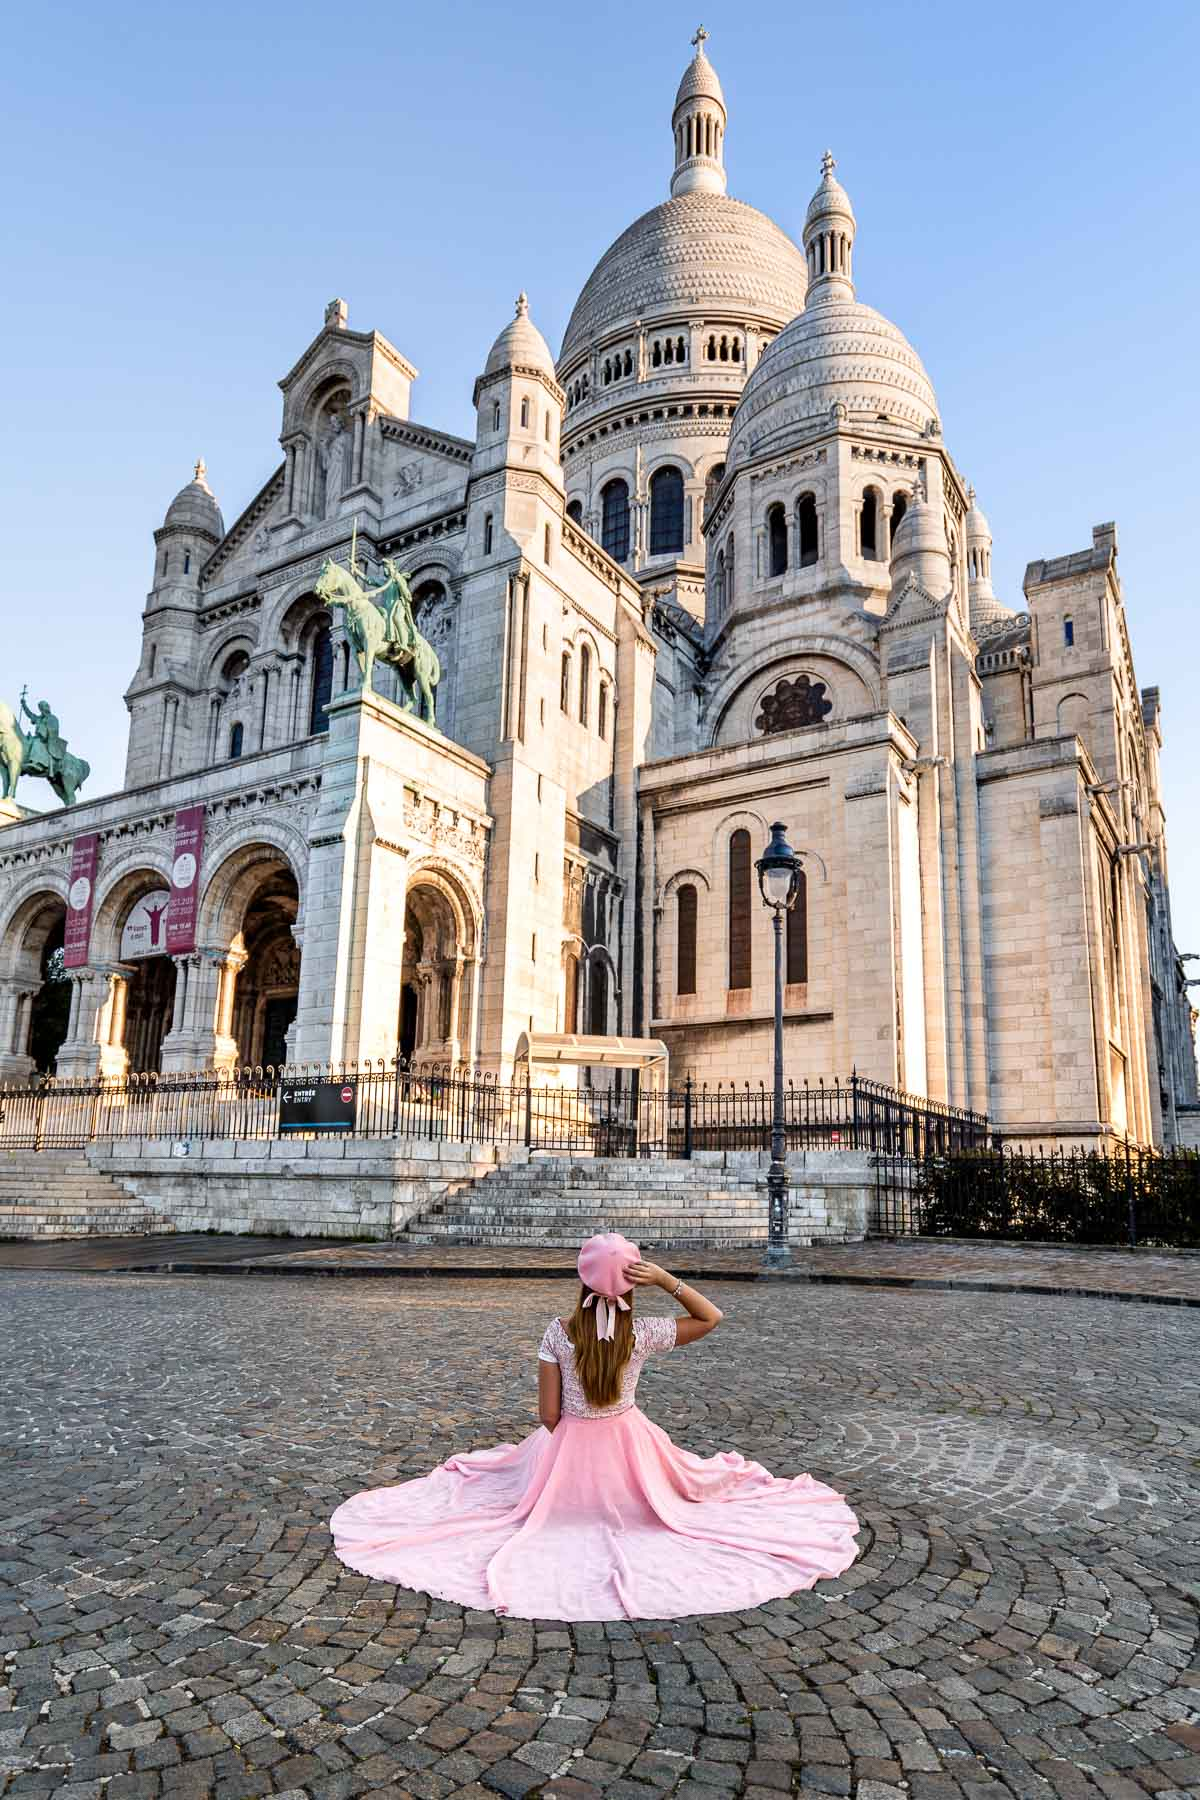 Girl in a pink dress sitting in front of the Sacré-Coeur Basilica in Paris